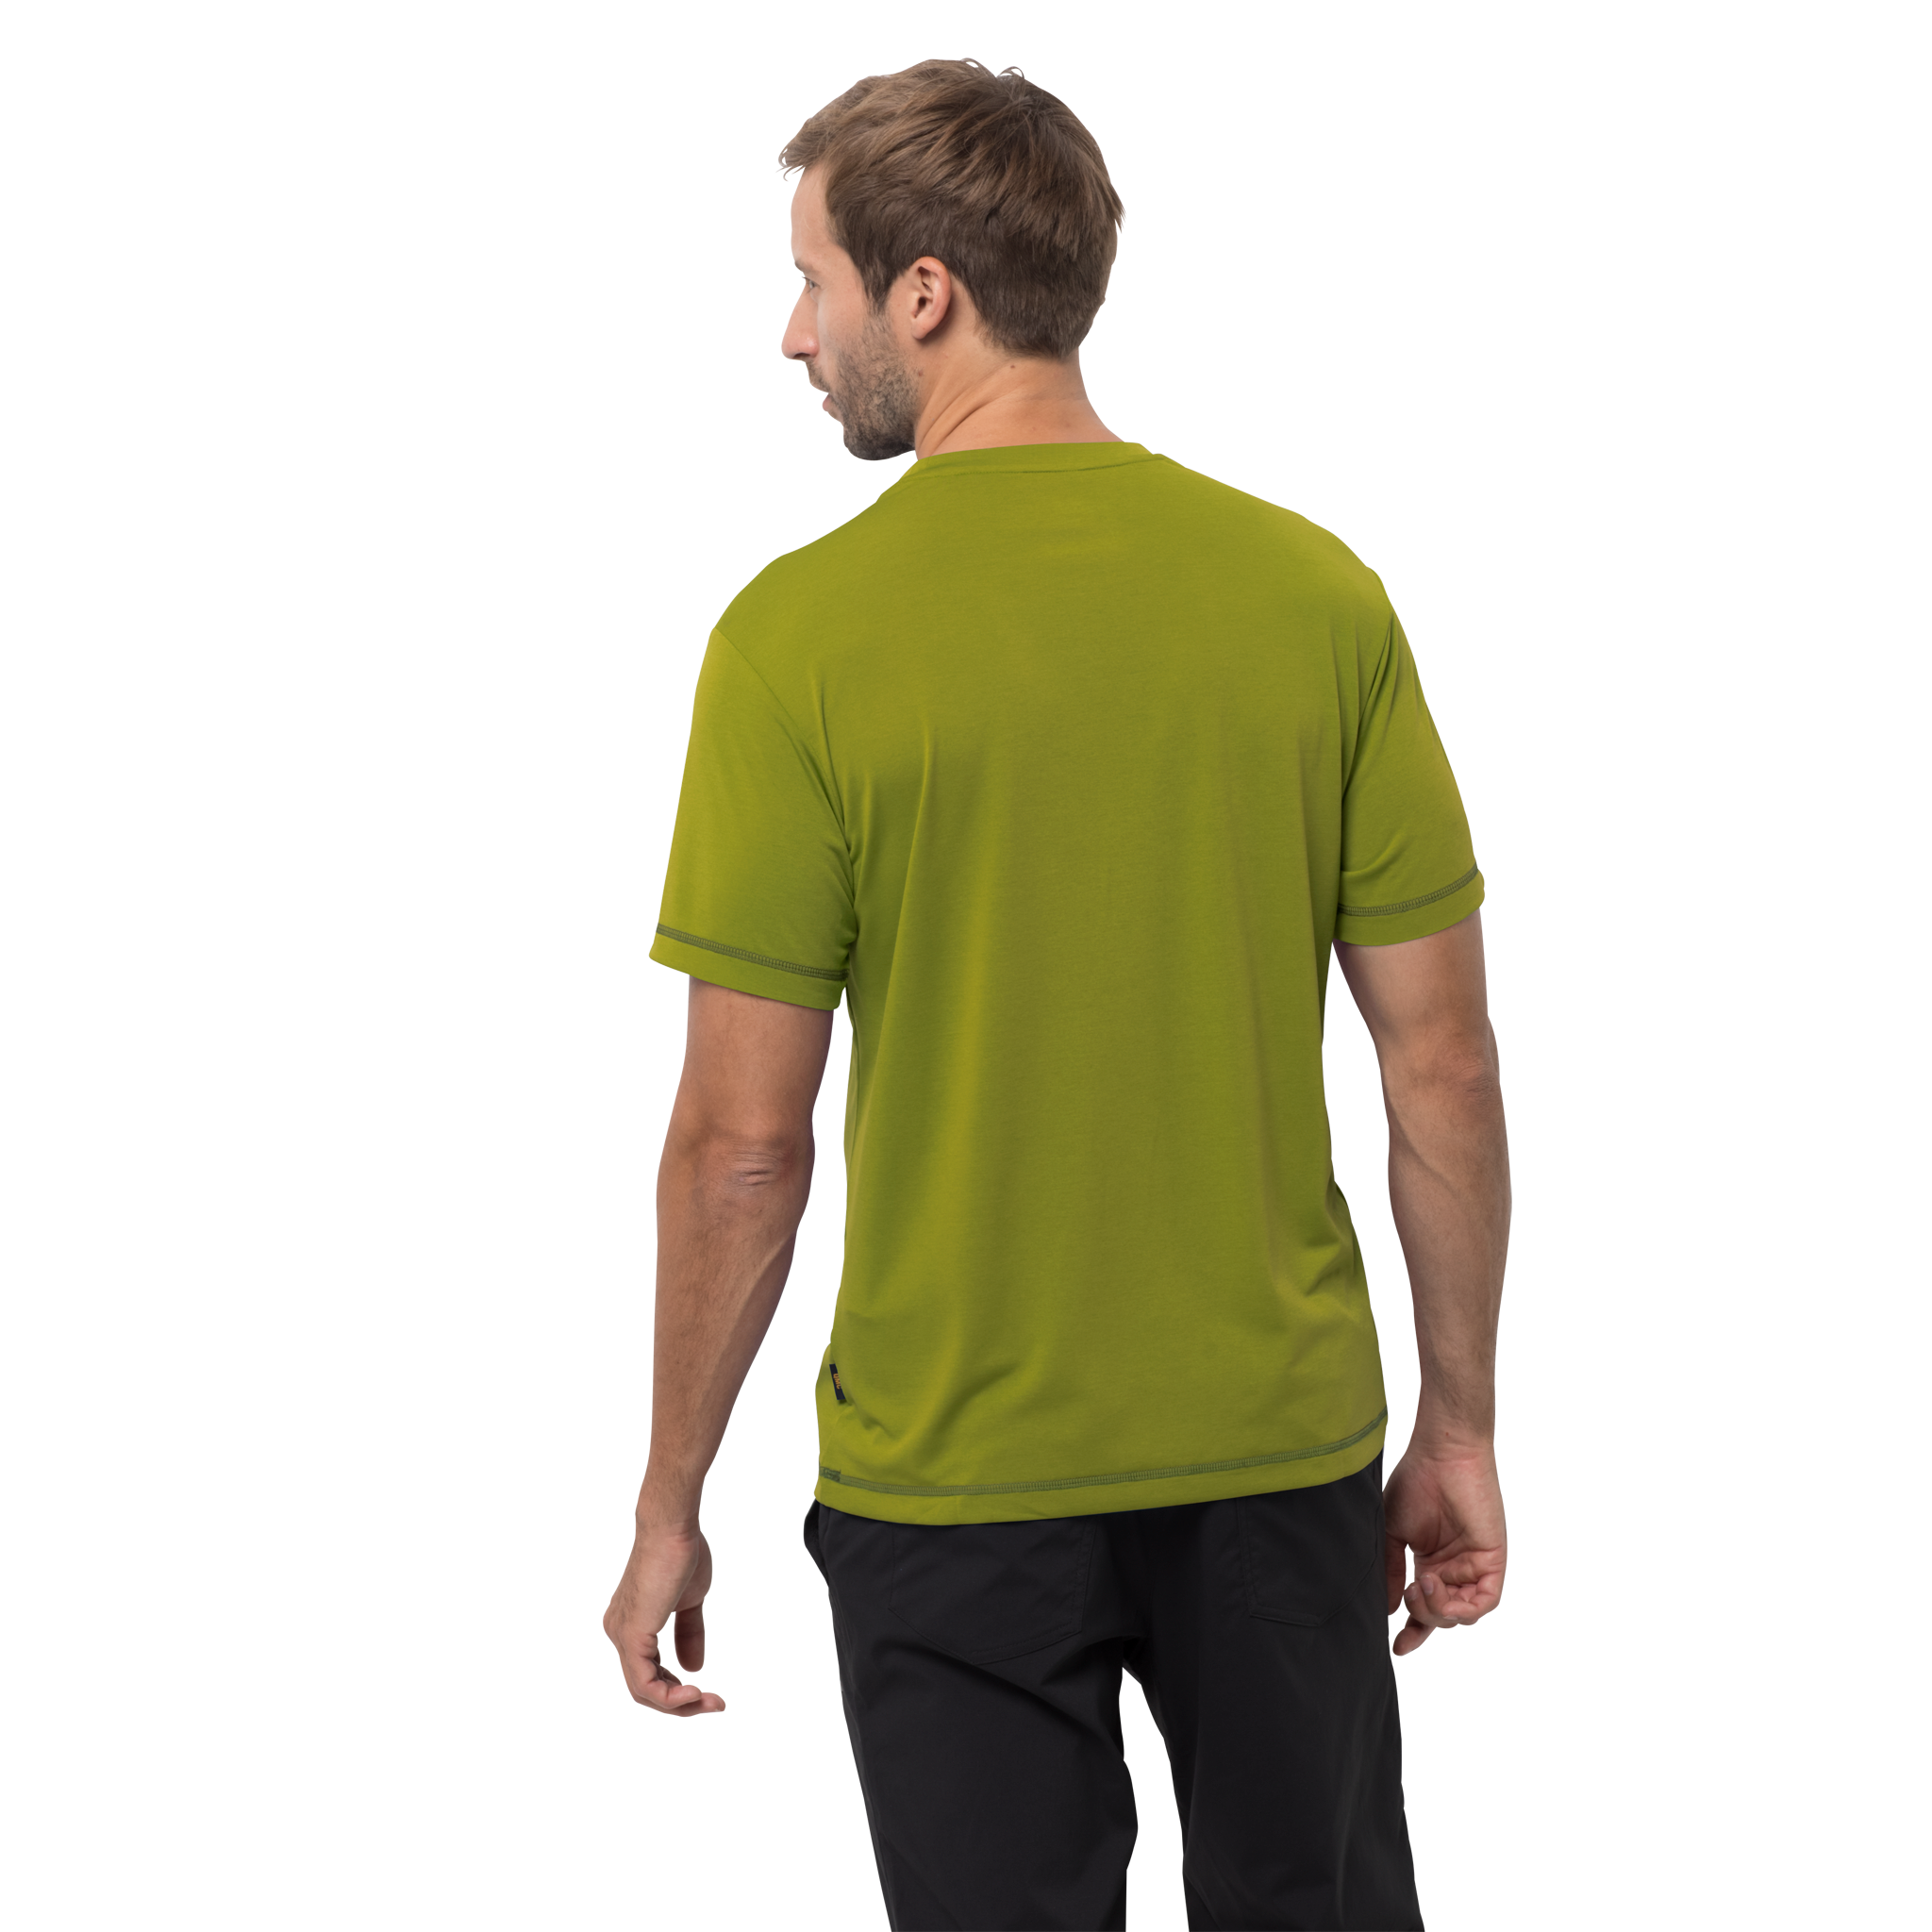 Jack Wolfskin Crosstrail T for Men in Eucalyptus Green